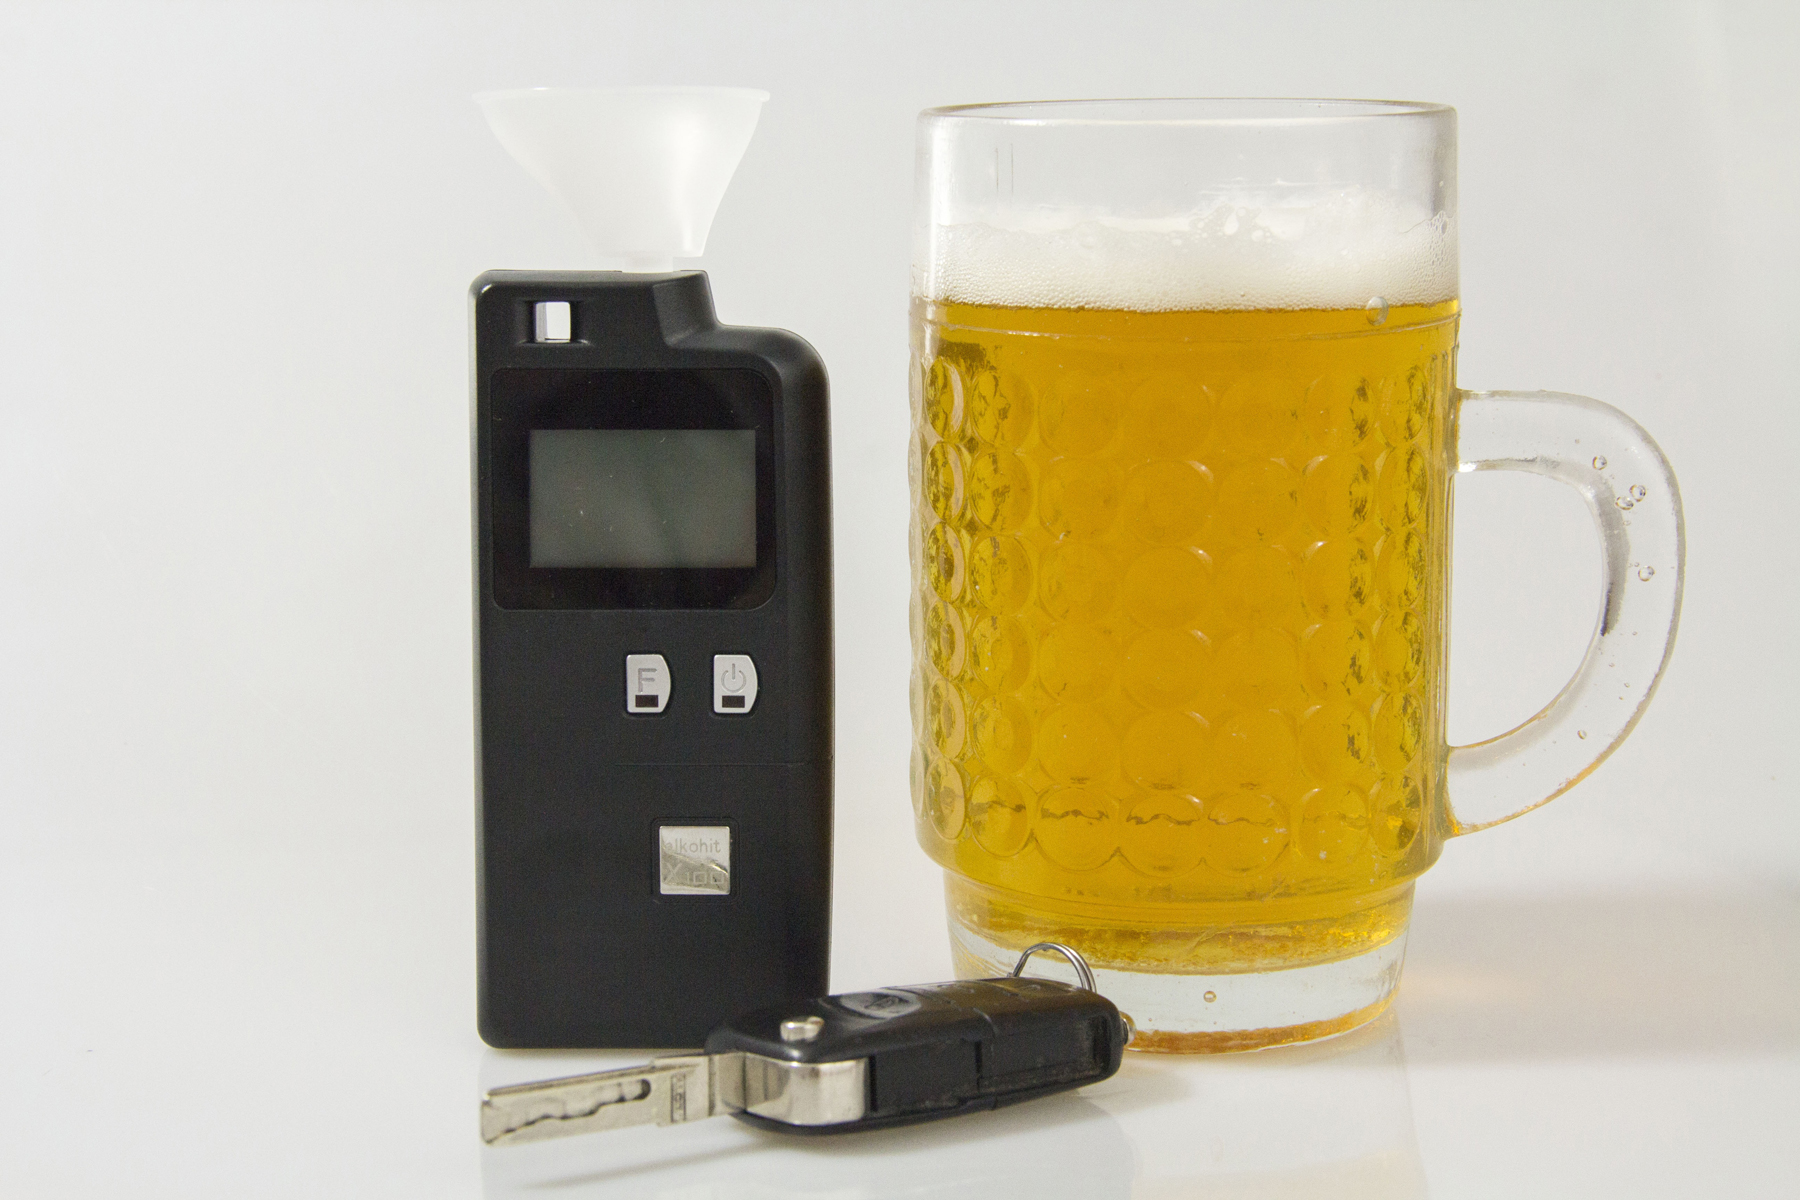 A breathalyser next to a pint of beer and car keys